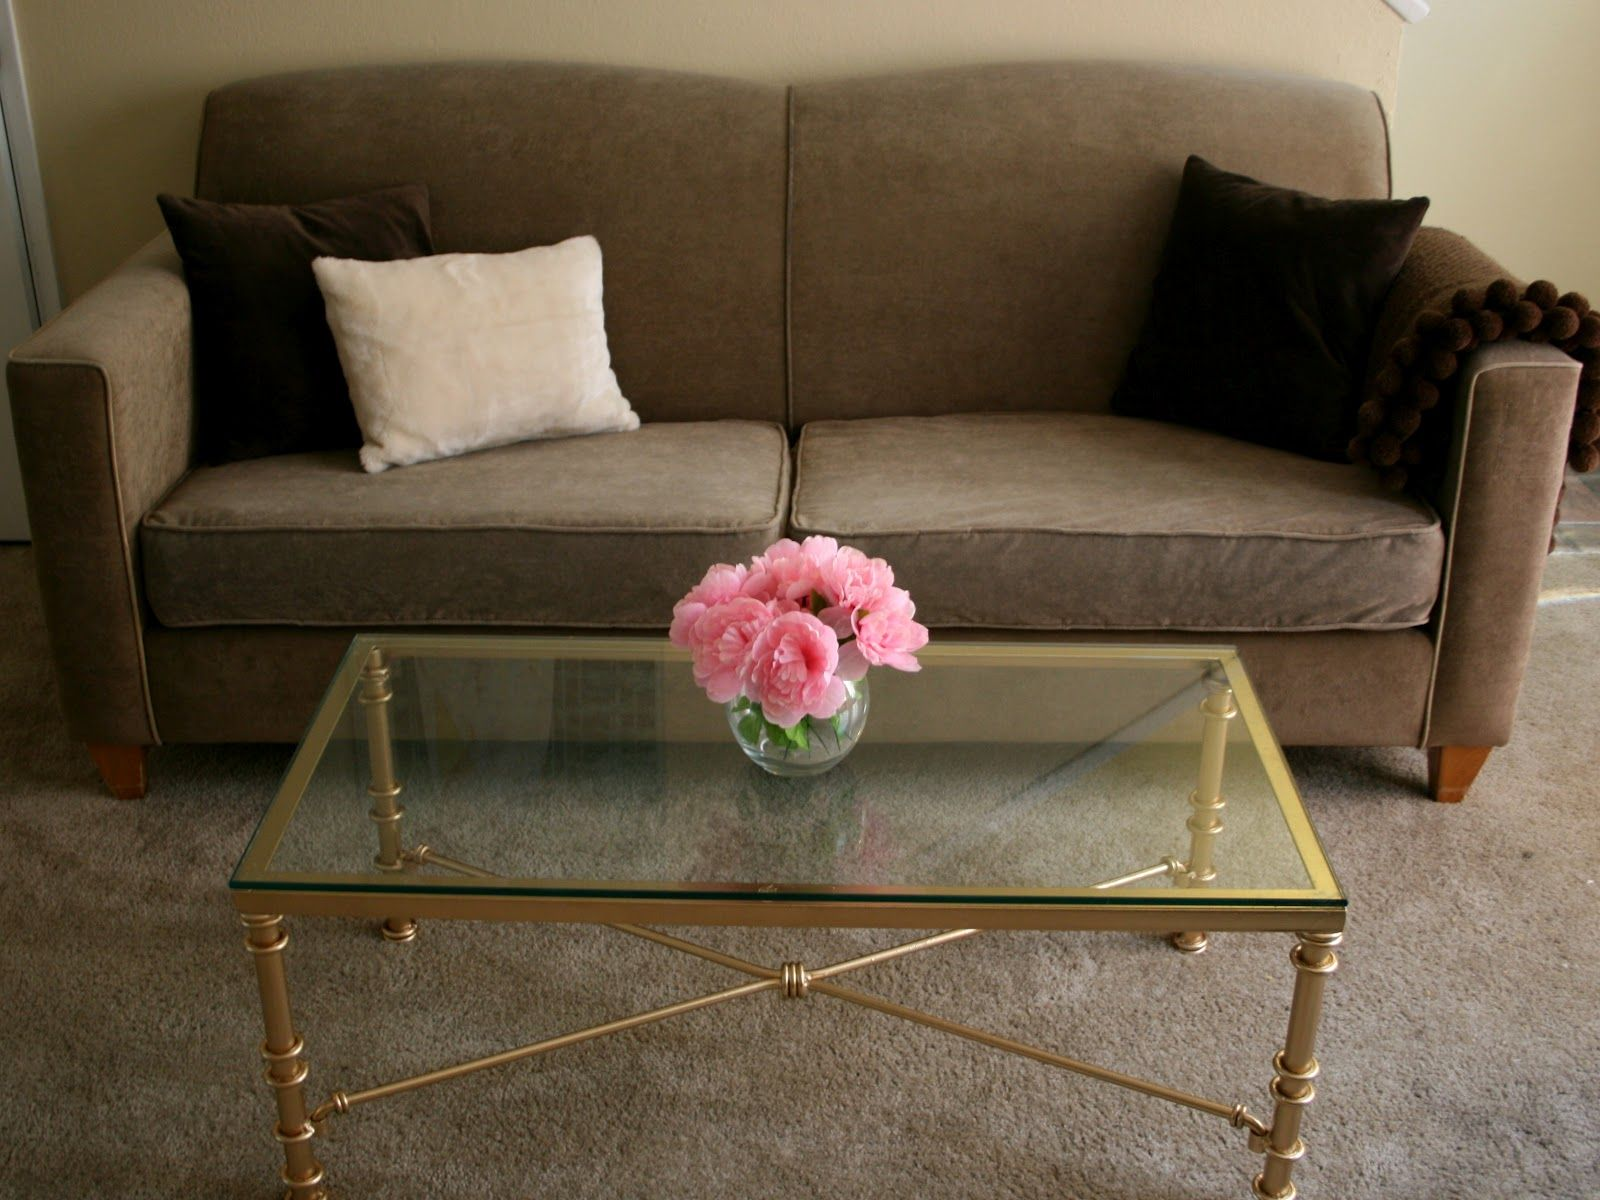 Ugly metal coffee table makeover success